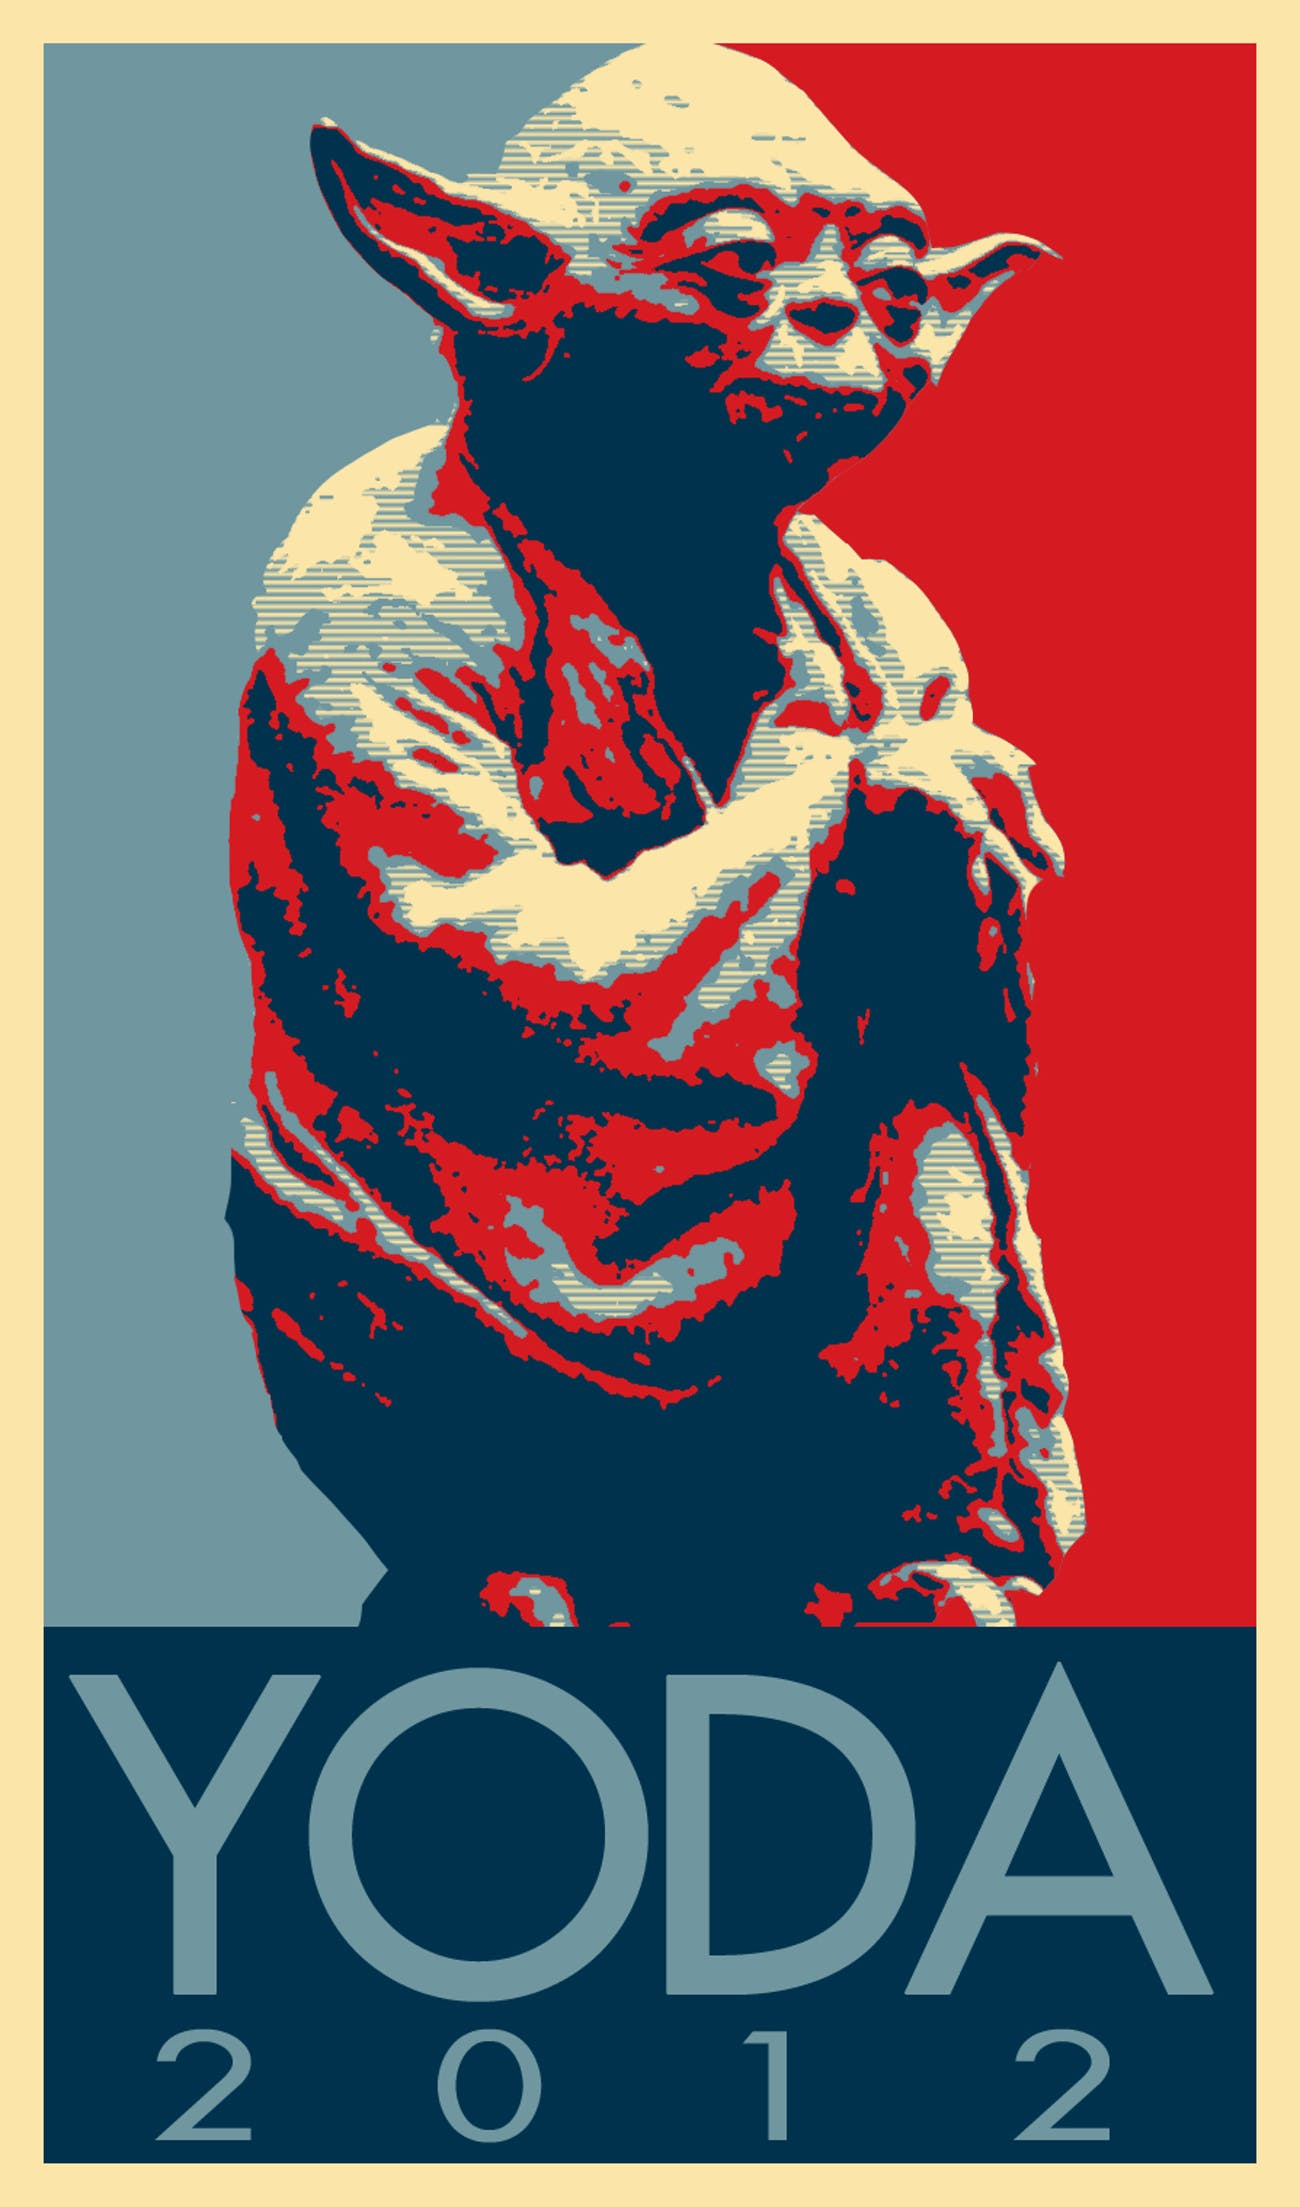 President Barack Obama's Final State of the Union as Yoda